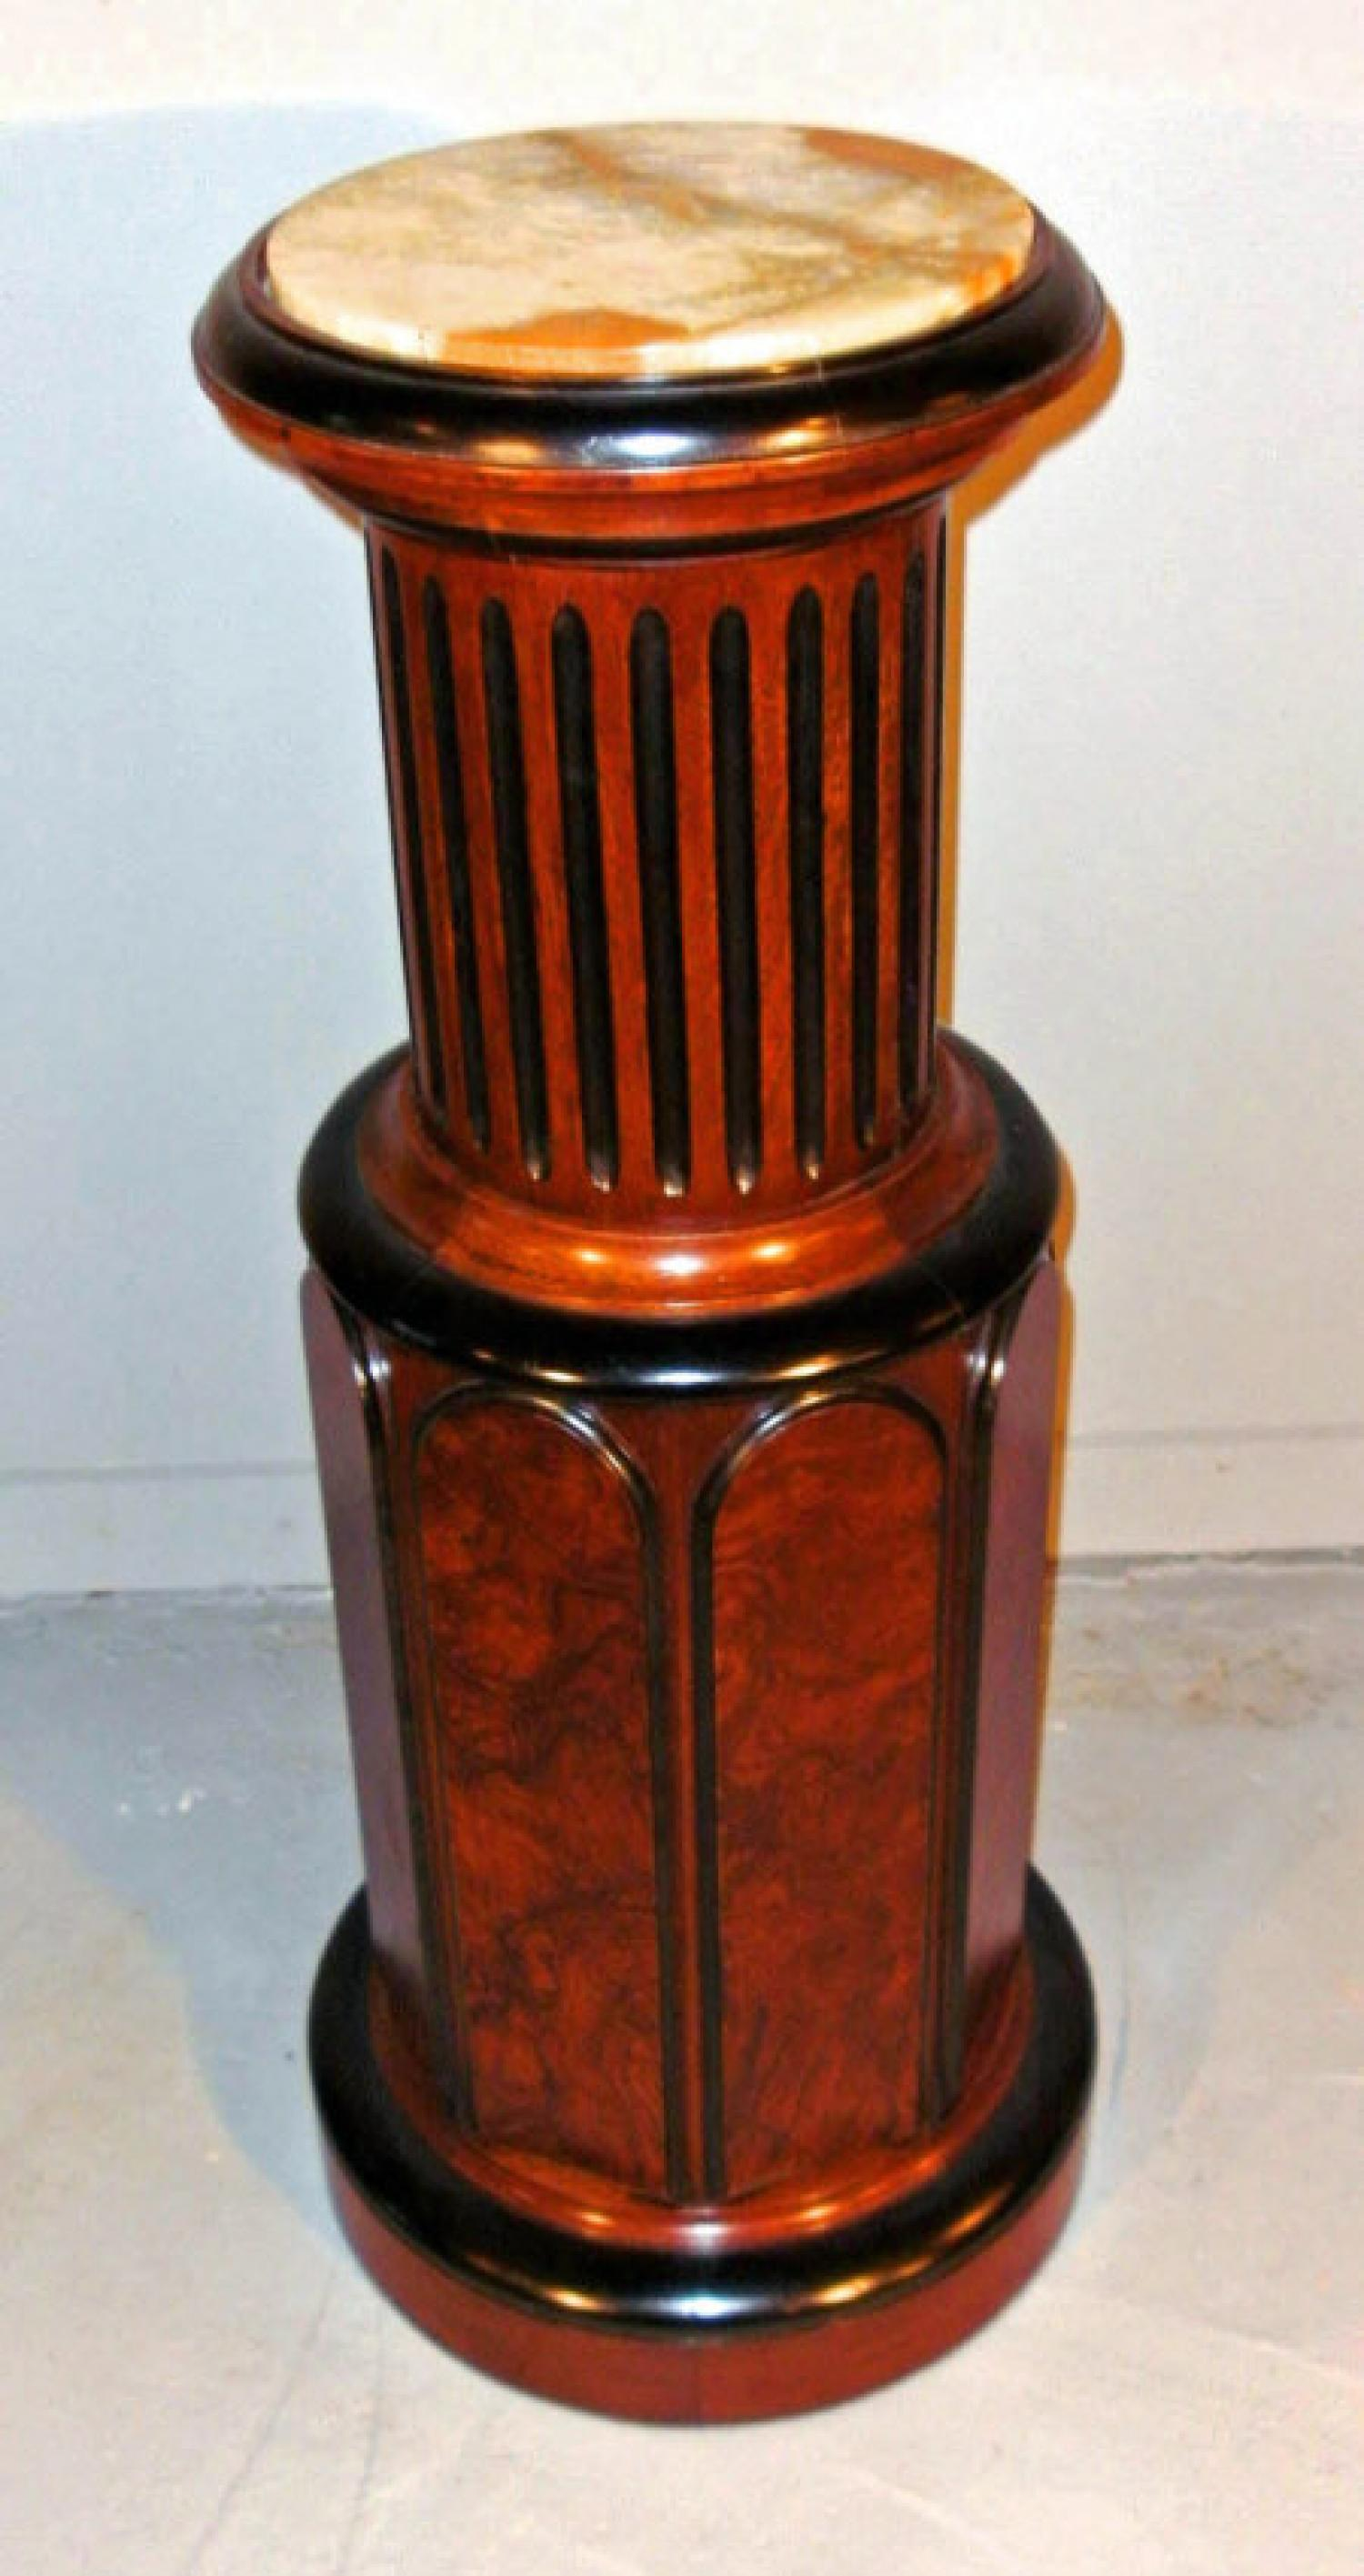 American New Classic style multi tiered mahogany pedestal c1875